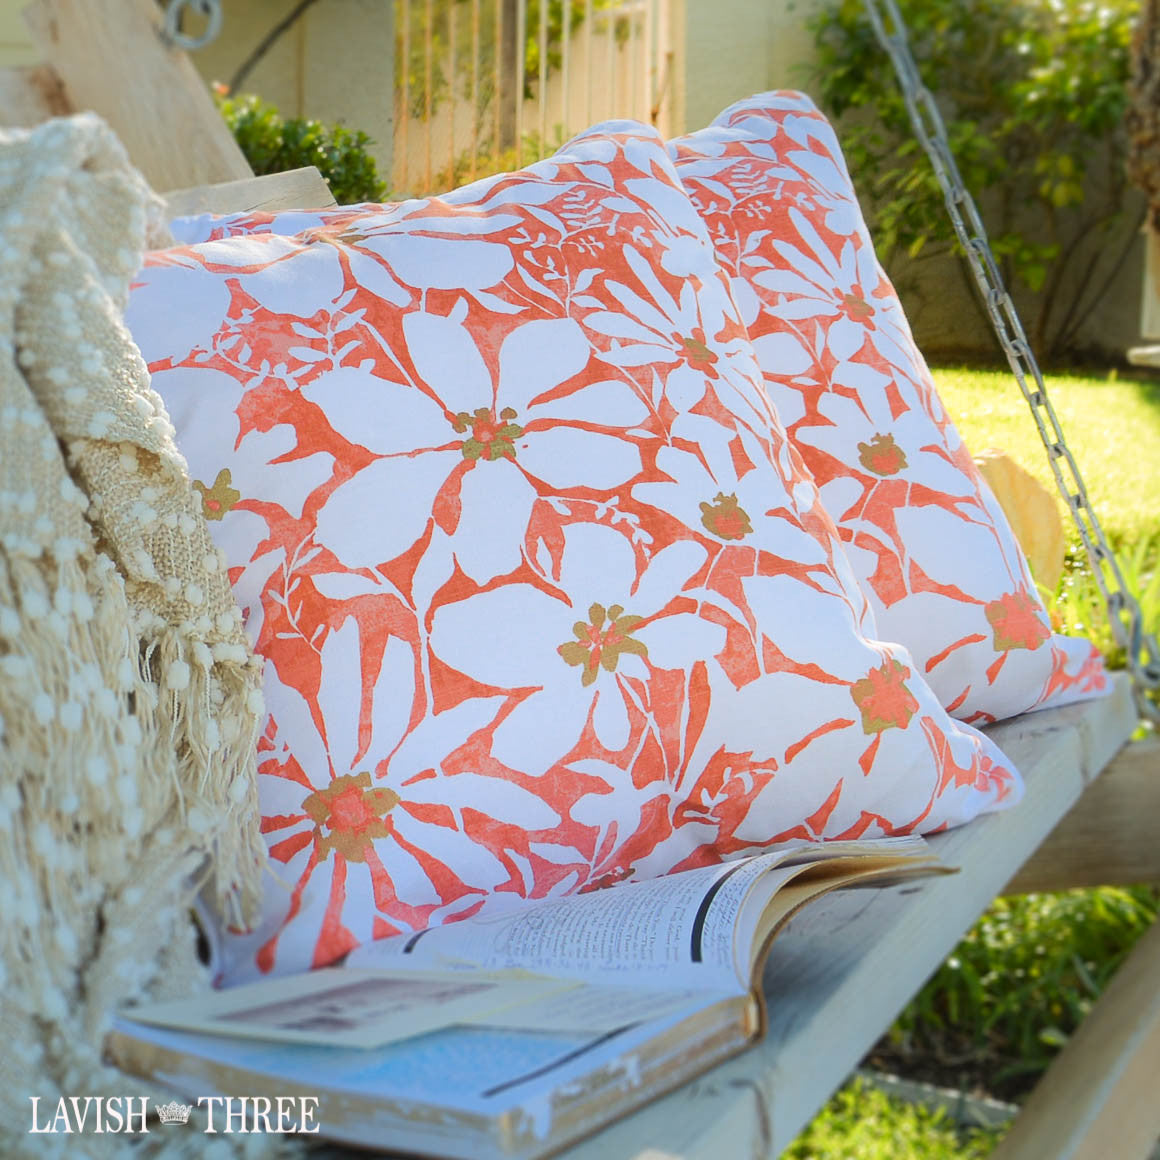 Bright Orange accent throw pillows with white daisies lavish three 3